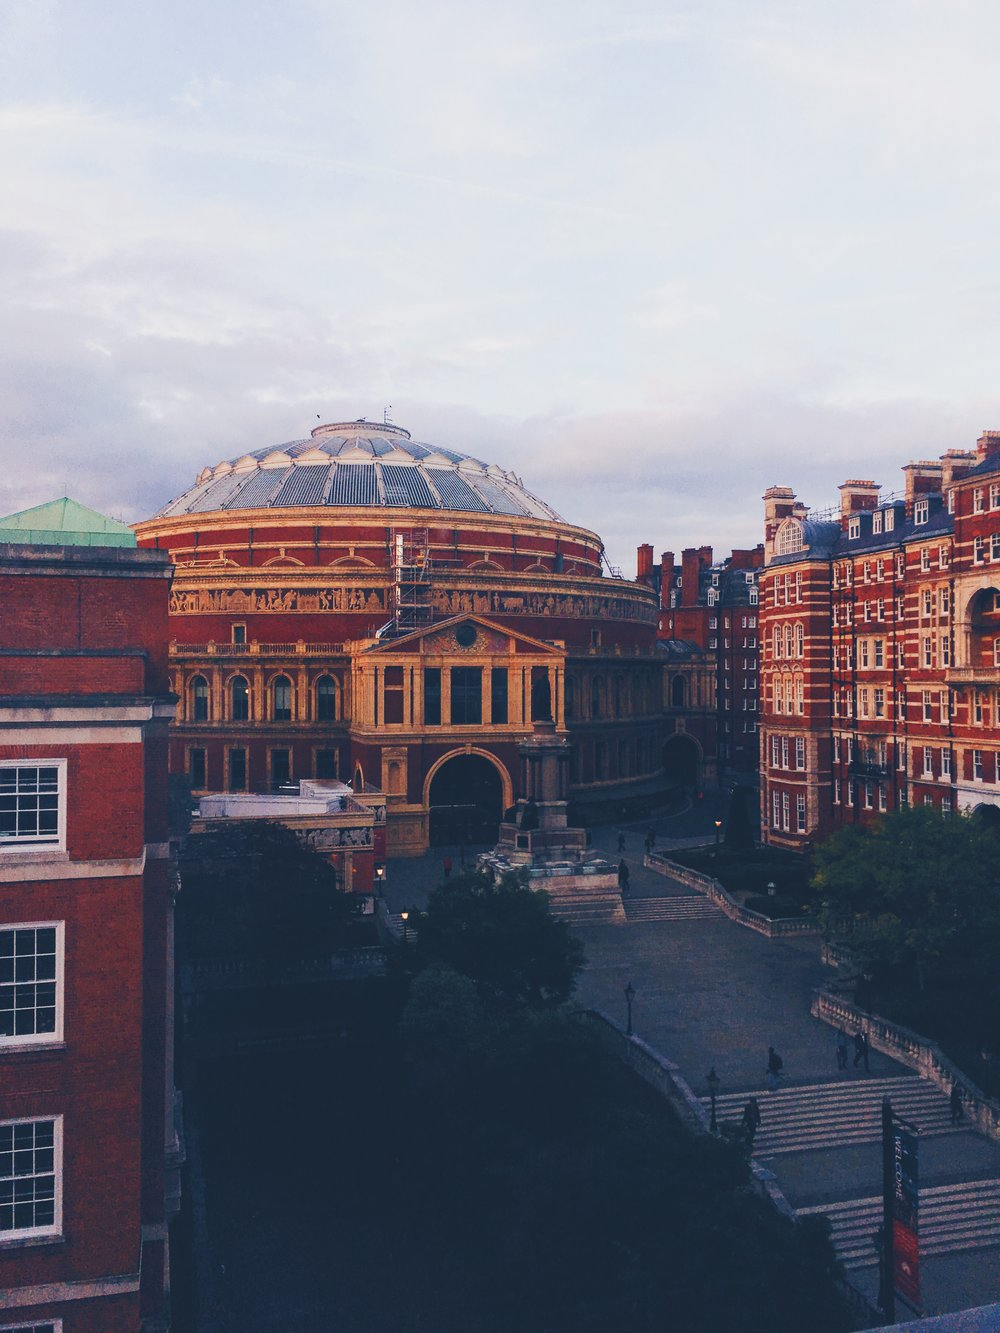 It's in a pretty great part of town too; just look at the view out the window of the composition studio!!  that's Royal Albert Hall btw